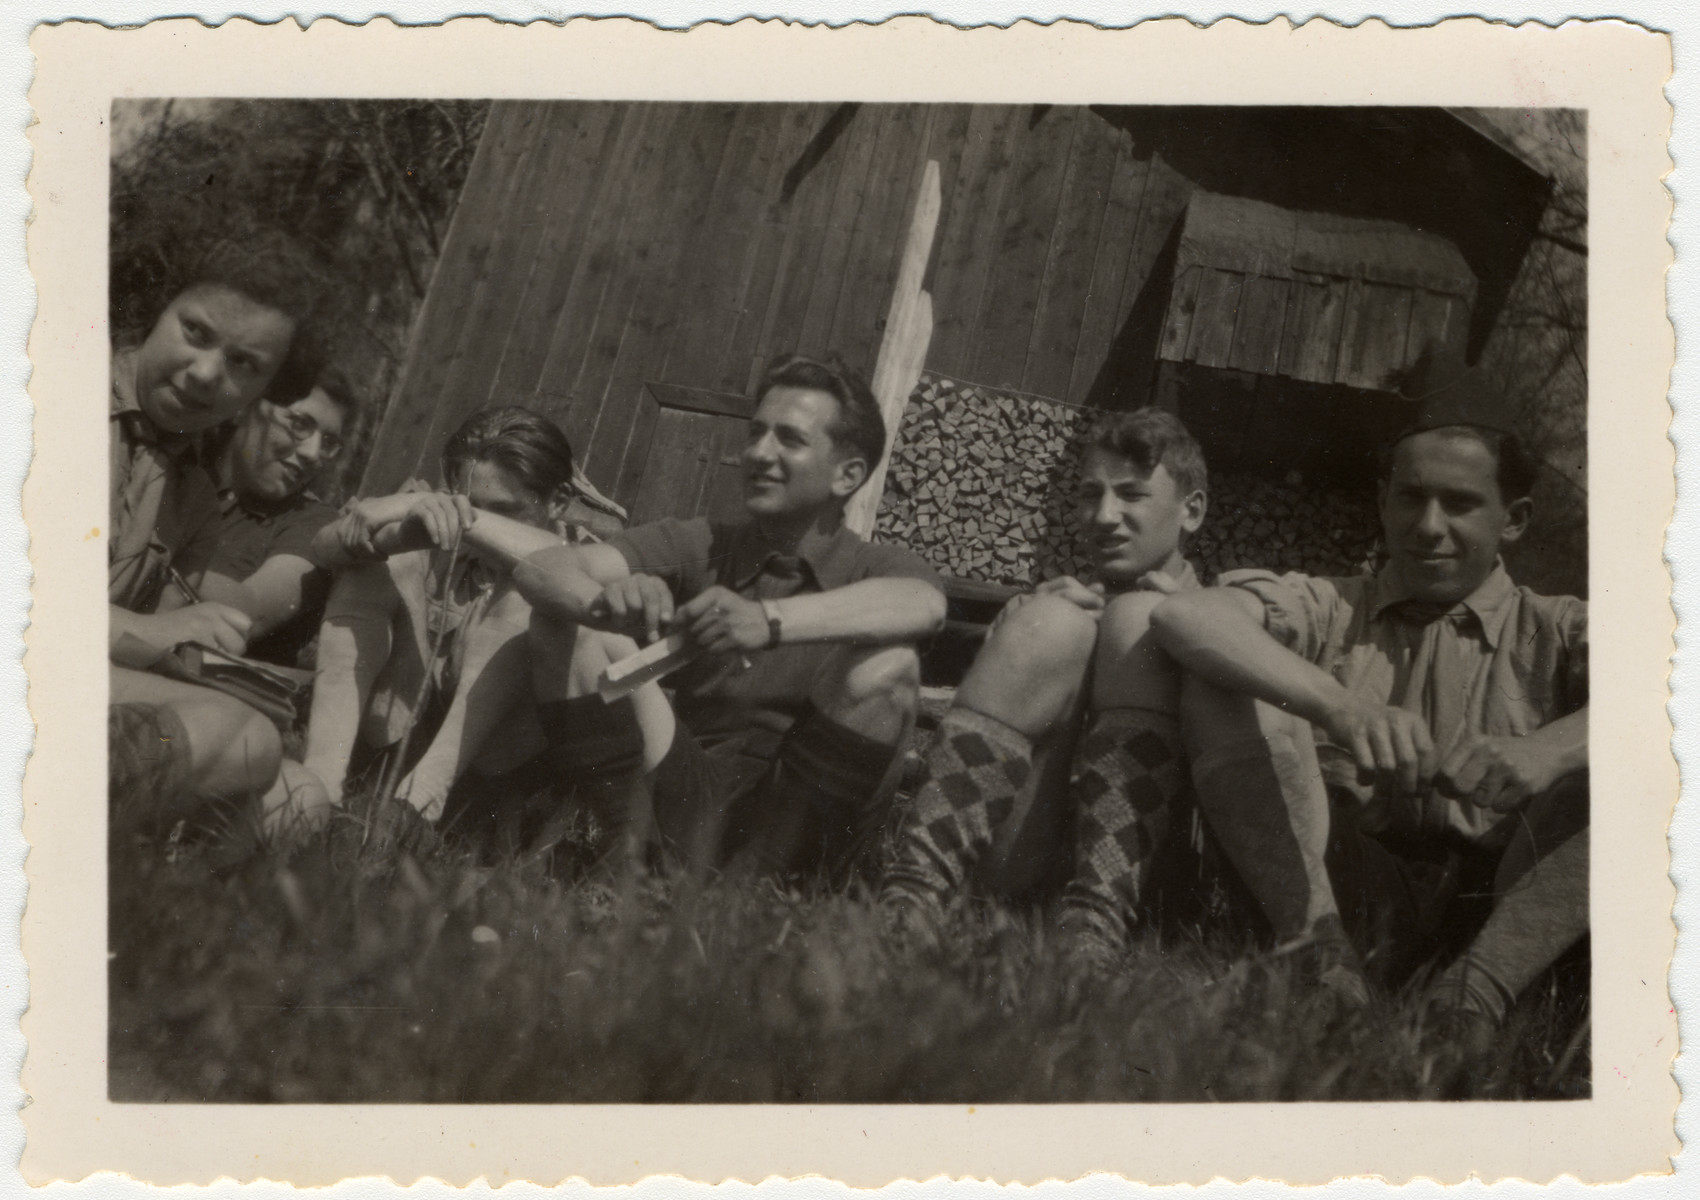 Lily Bornstein, Inge, Rudi, Yosef, Bruno Lewin, and Teddy Browar sit outdoors for a discussion at their camp in Elgg.